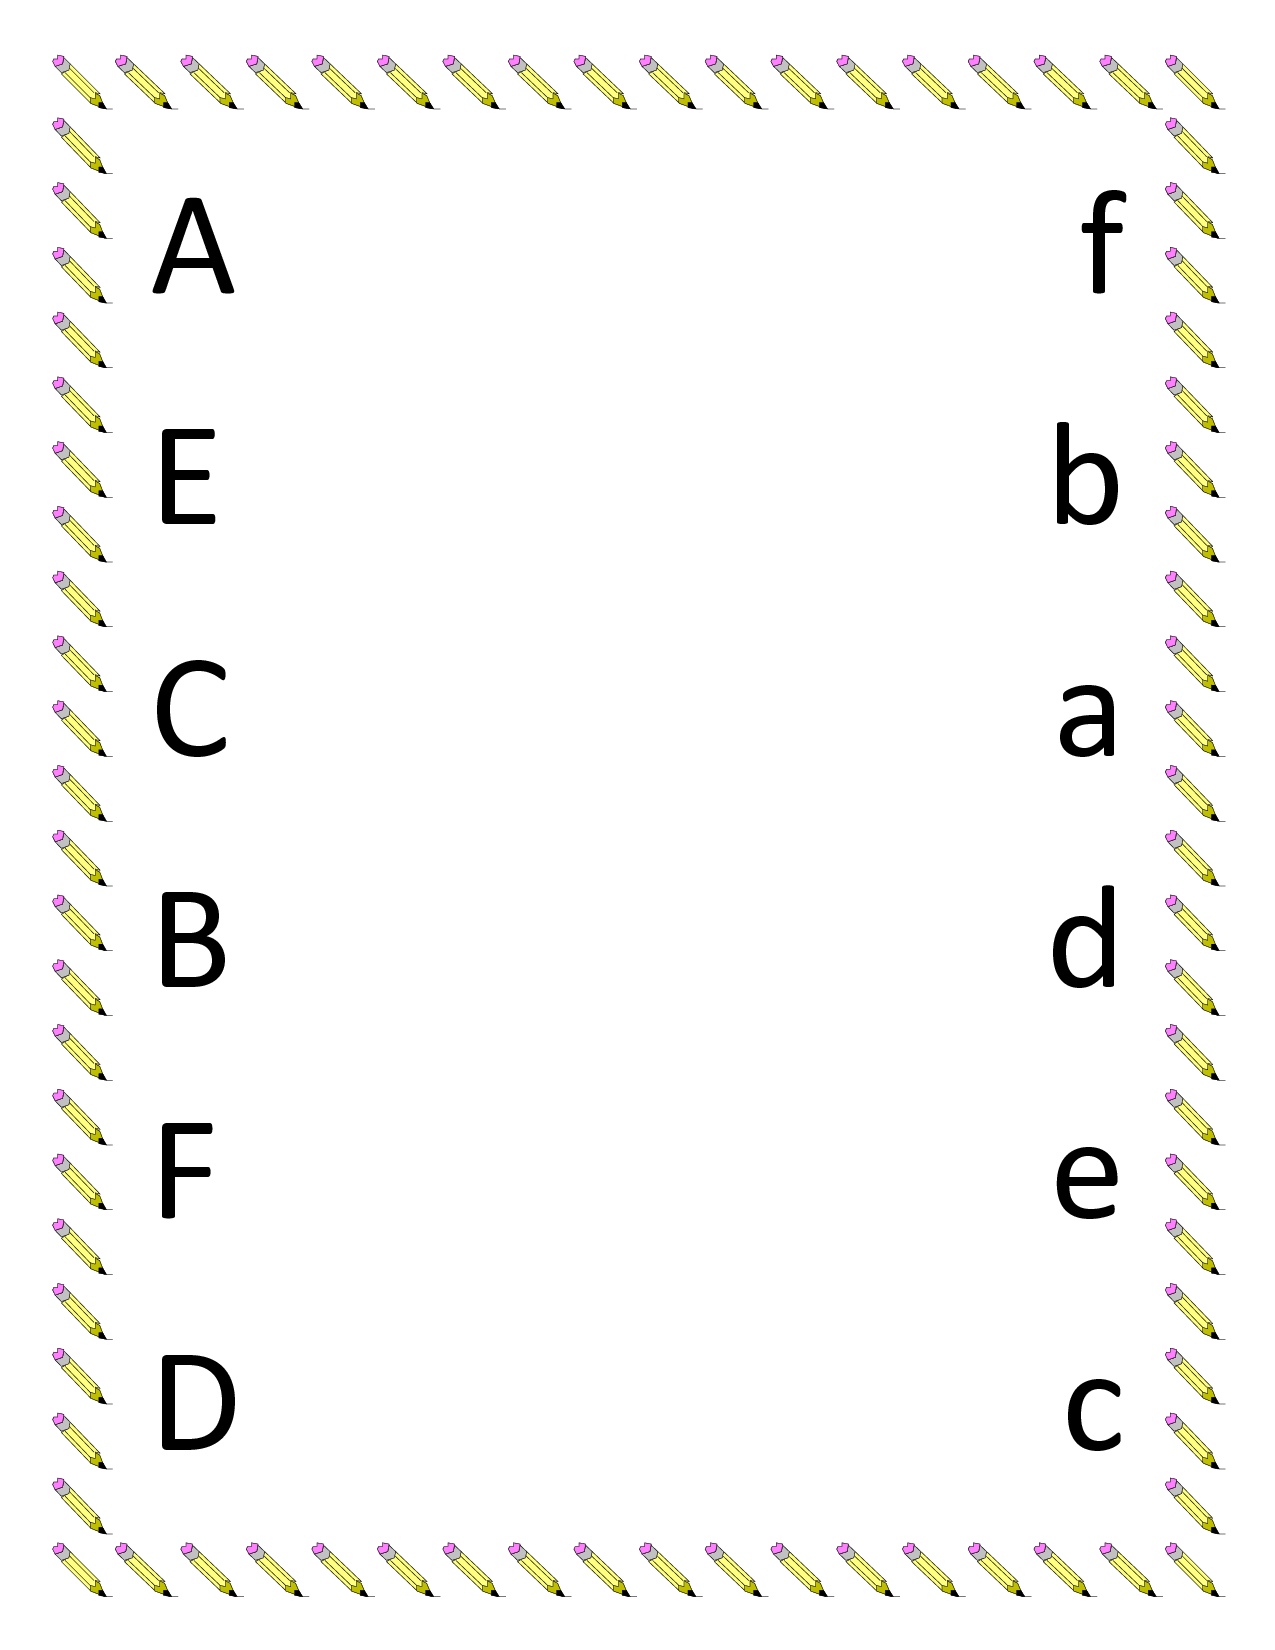 Worksheets Abc Worksheets For Pre-k kindergarten worksheets preschool printables for kids 16 pictures photos